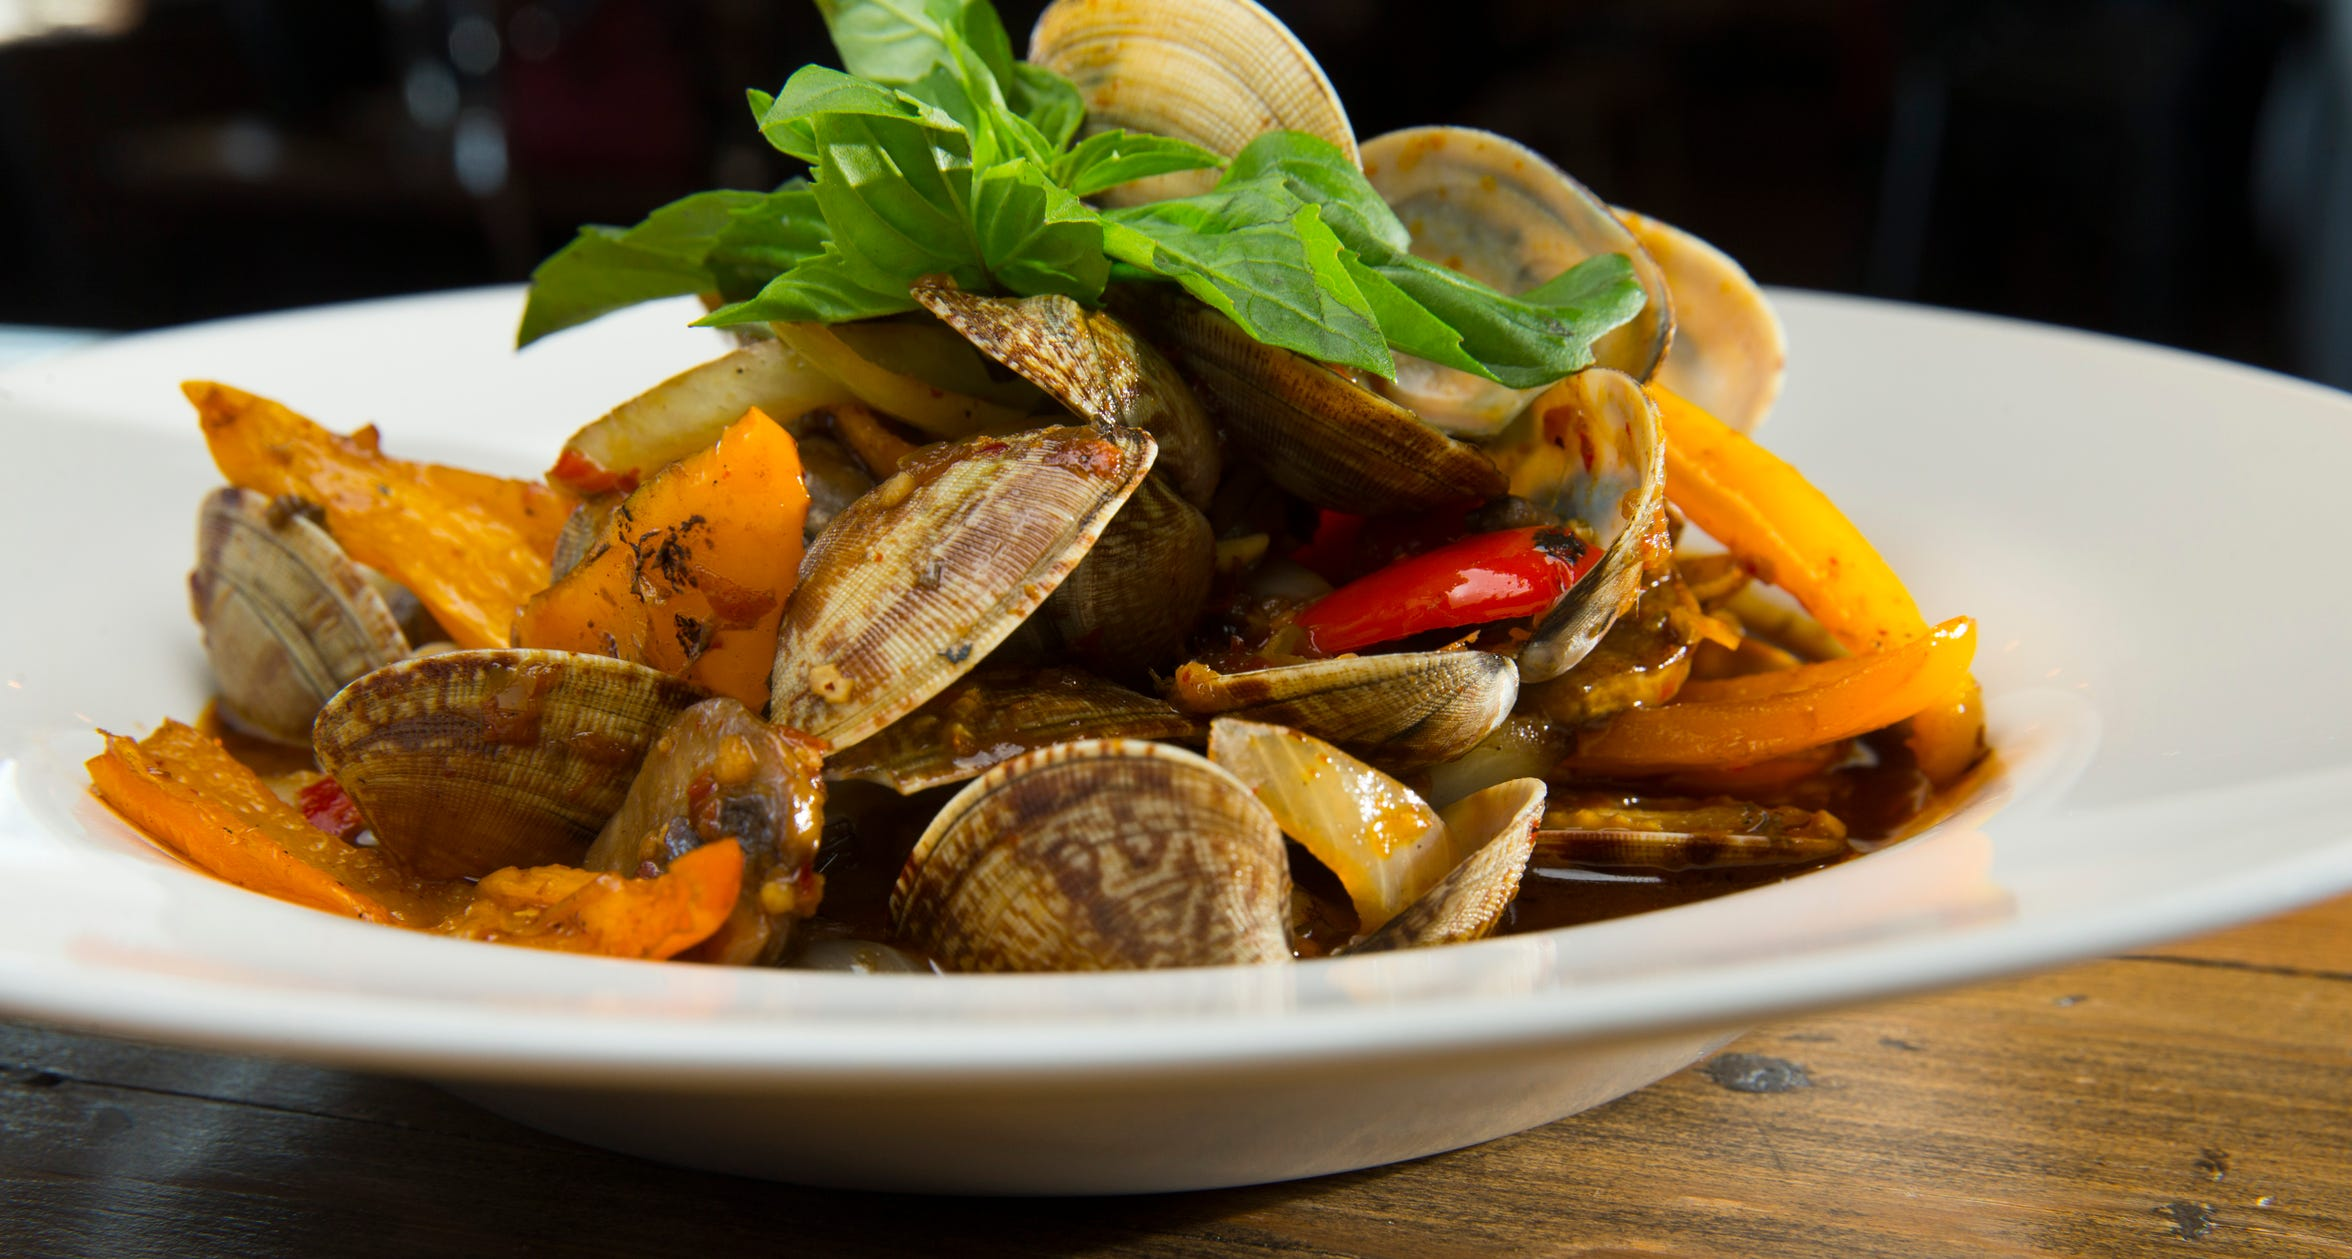 Pad hoy line at  AppeThai, 3900 W. Brown Deer Road in Brown Deer, is made with sautéed Little Neck clams, onion, bell pepper, fresh chile, garlic, basil and white wine sauce.